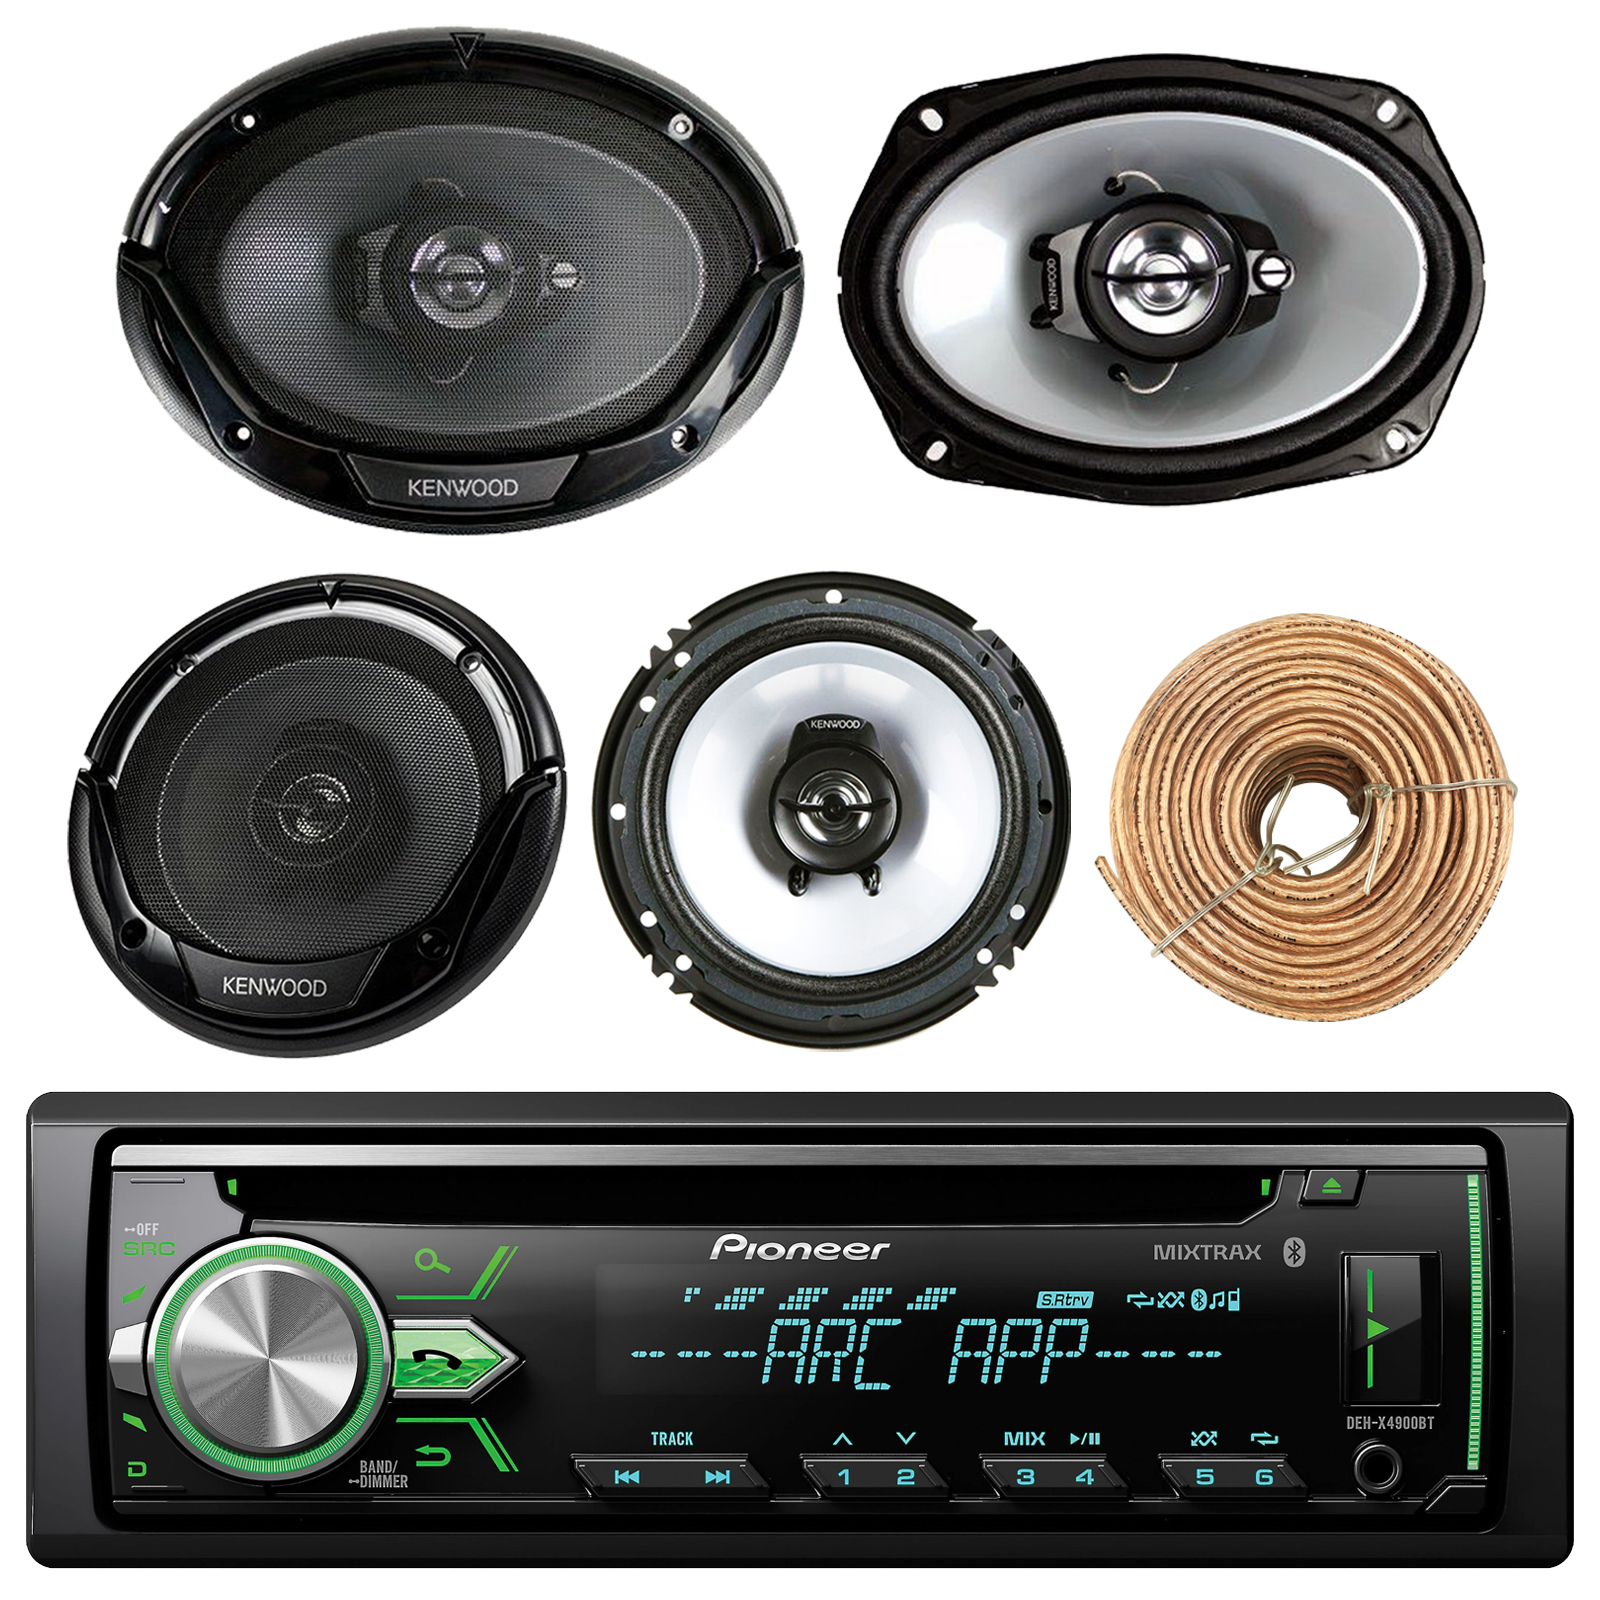 "Pioneer DEH-X4900BT Car Bluetooth Radio USB AUX CD Player Receiver - Bundle Combo With 2x Kenwood 6.5"" 2-Way Black Car Coaxial Speakers + 2x 6x9"" Inch 3-Way Speaker + Enrock 50 Foot 18g Speaker Wire"